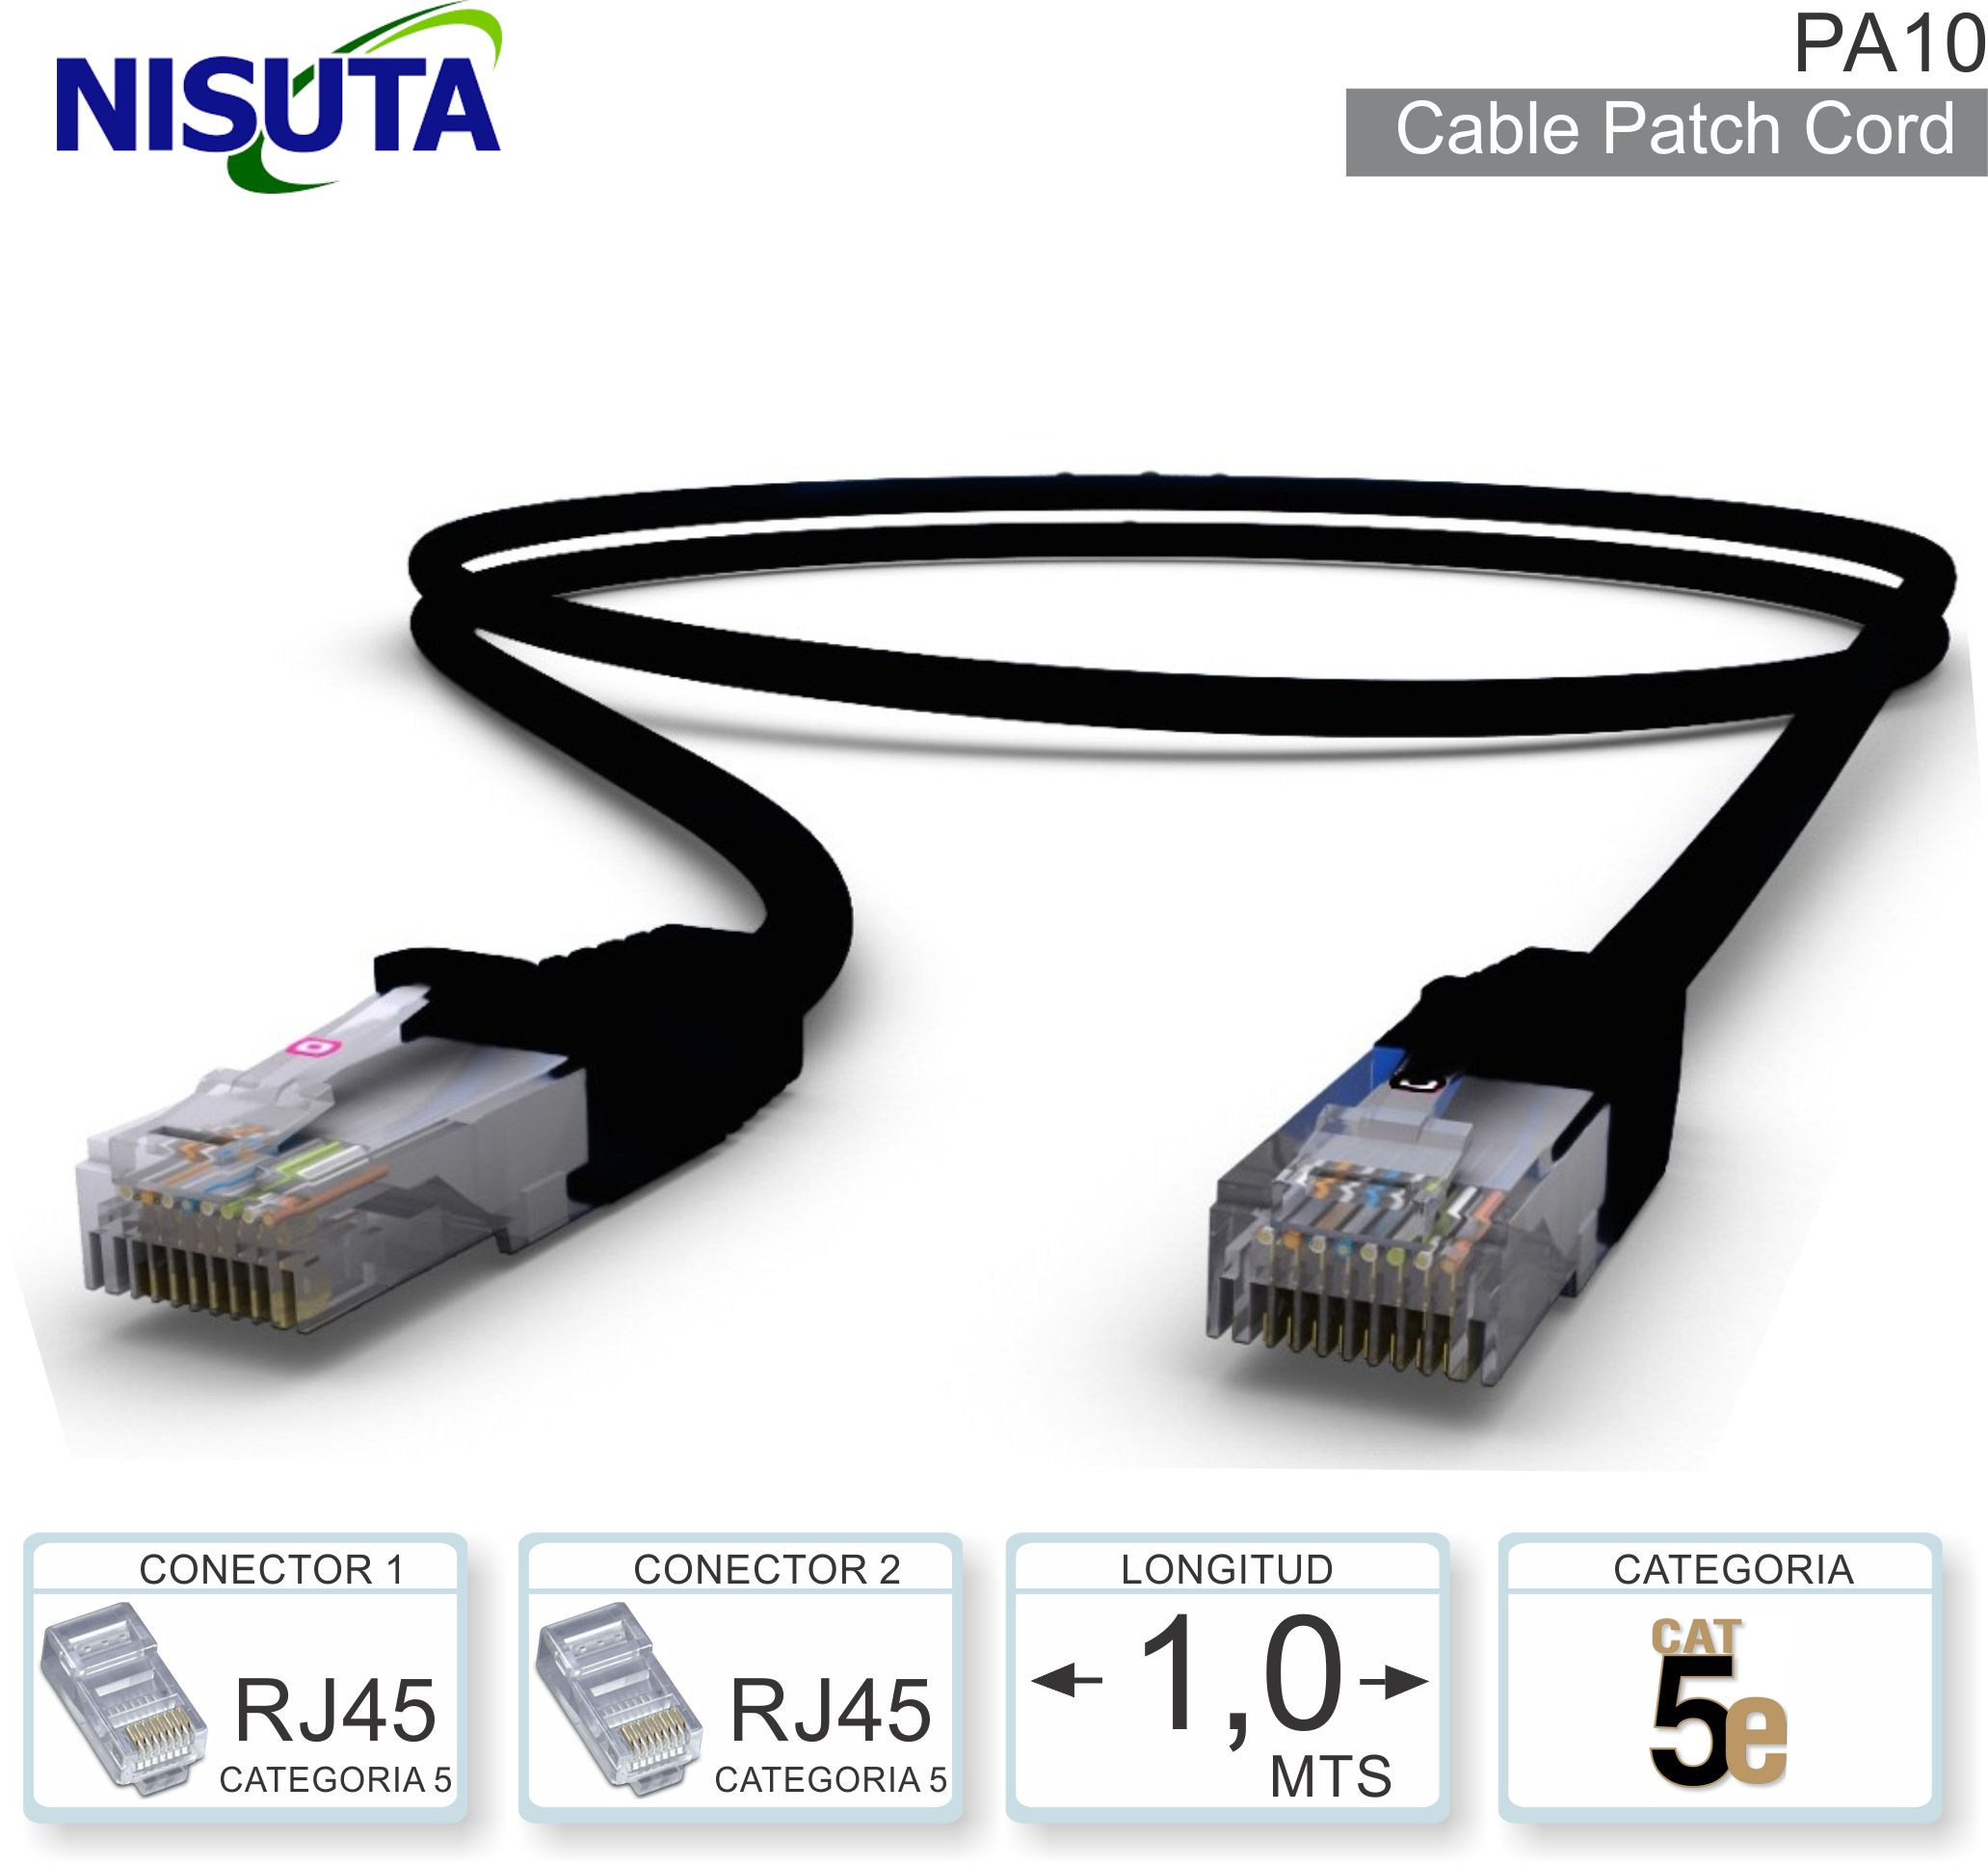 Cable Patch Cord C5 00.5M NISUTA PA05